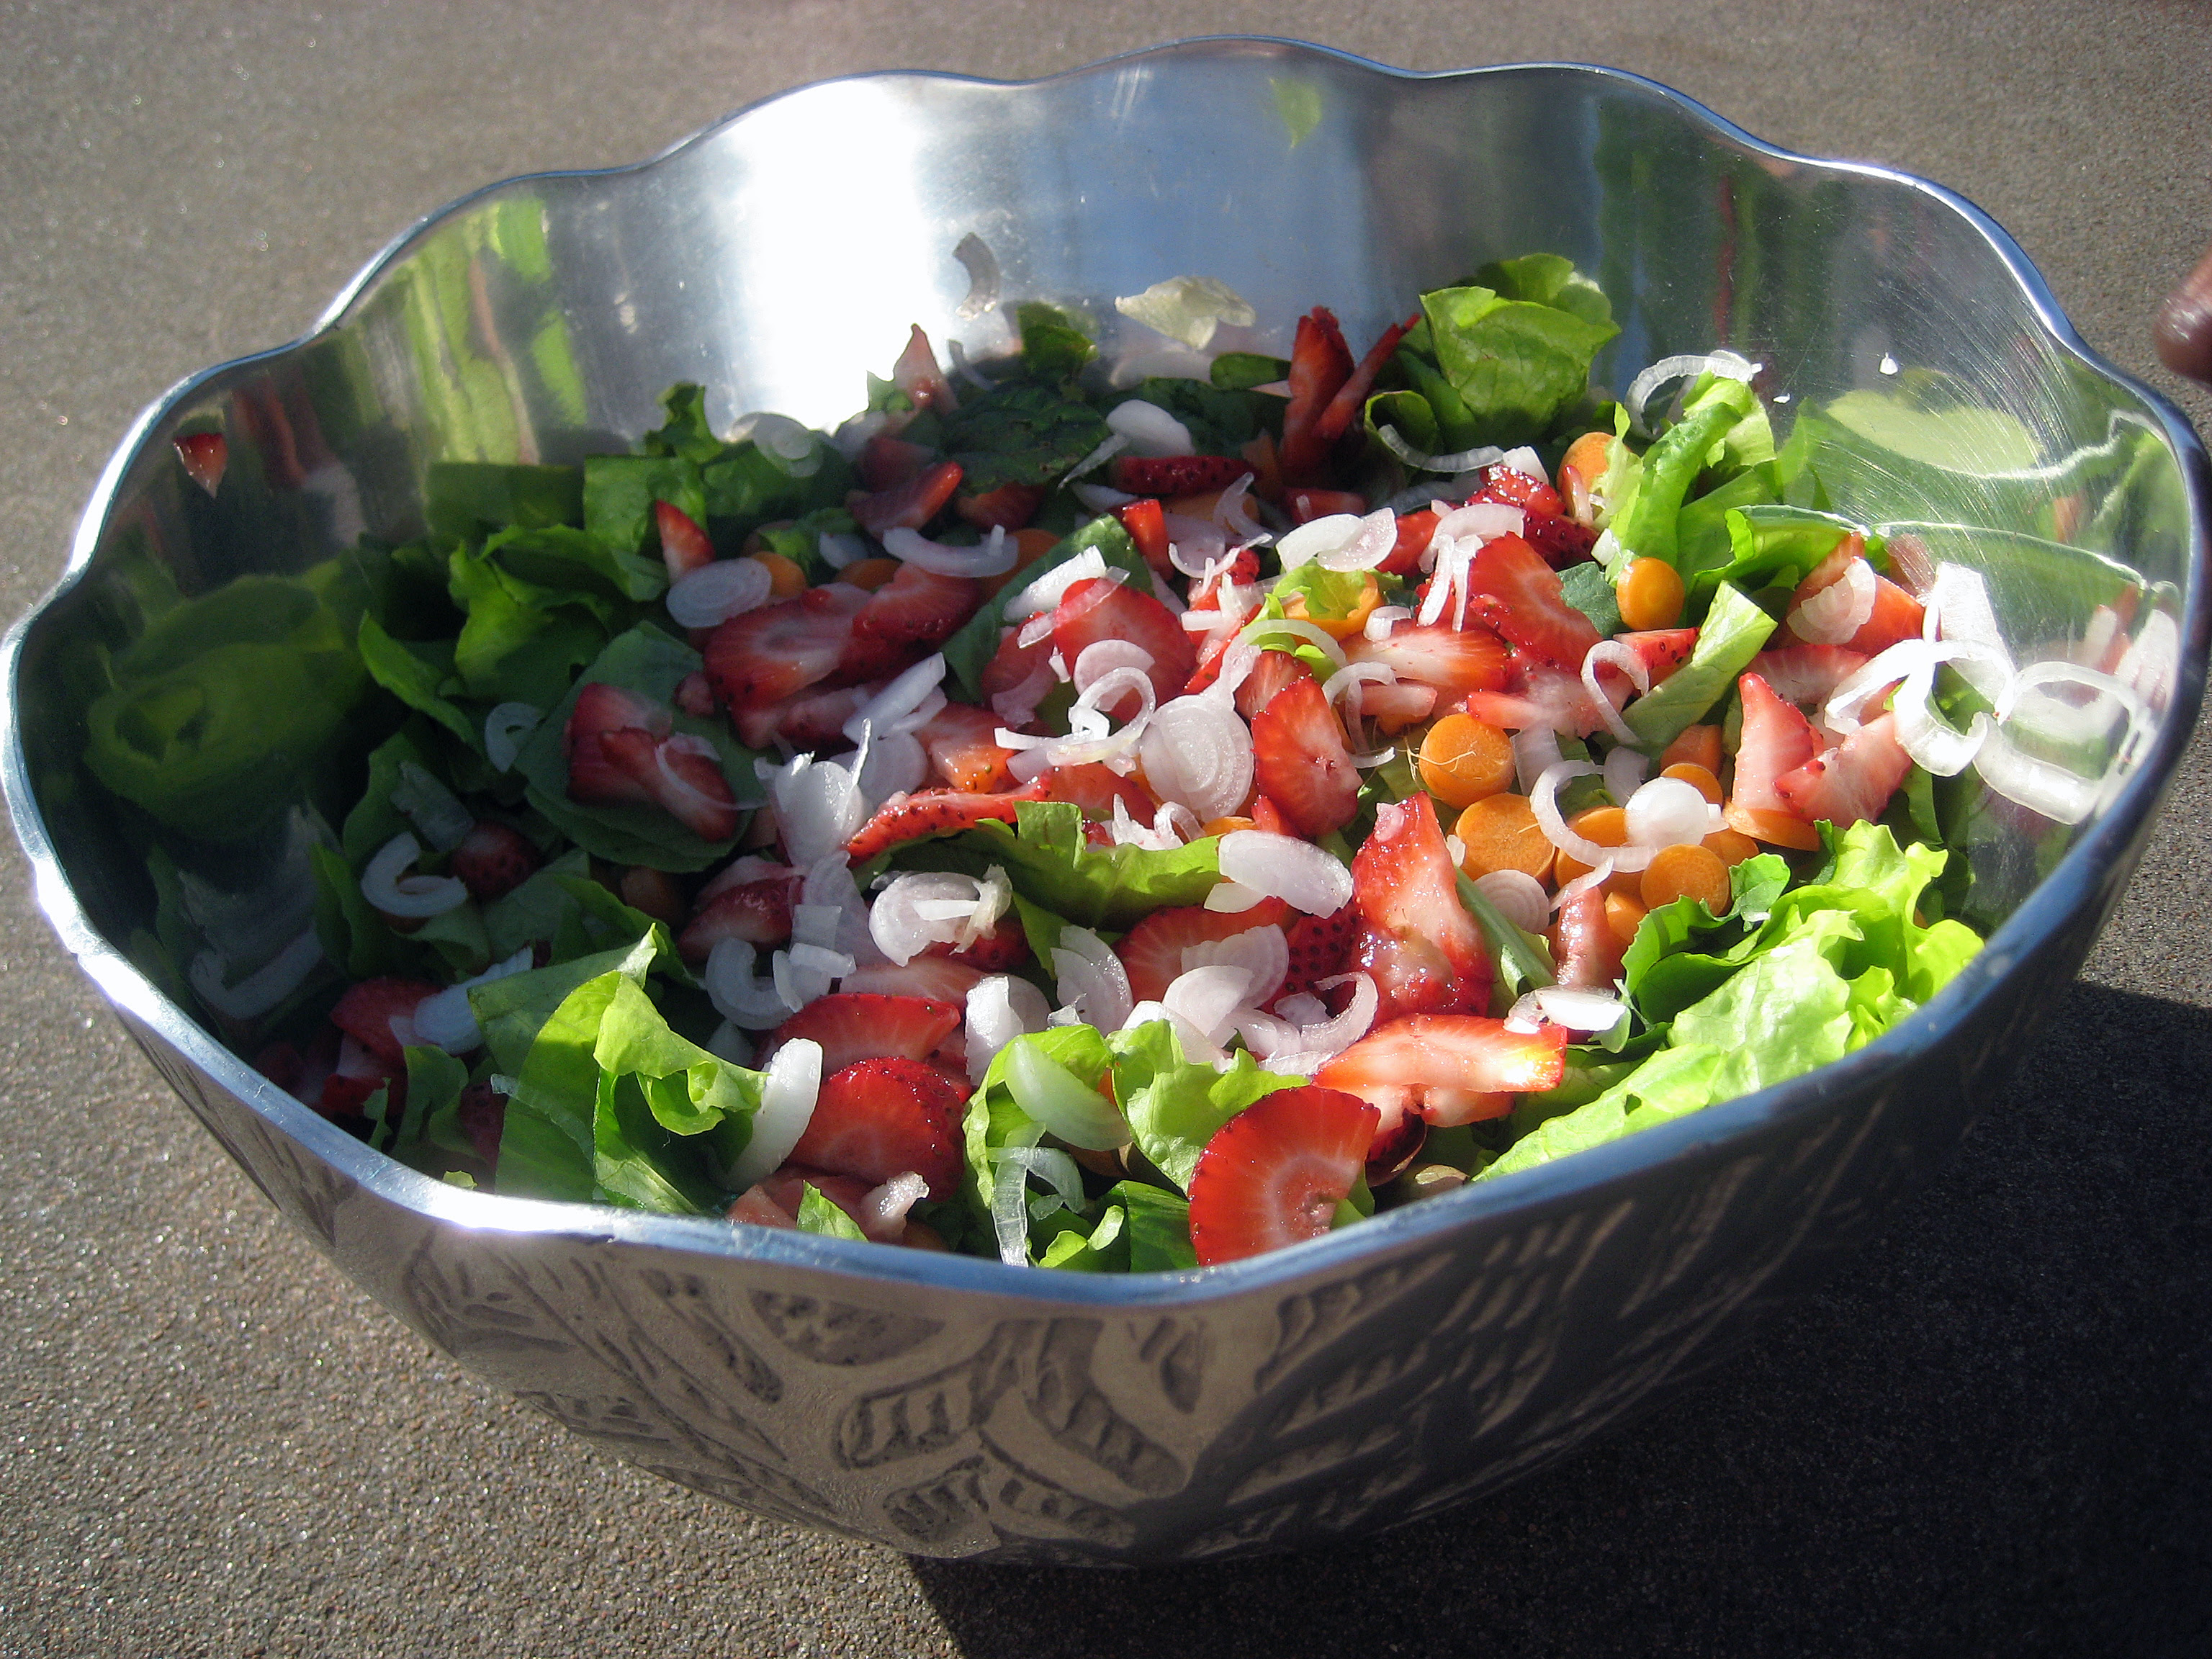 Another Day, Another Salad - 357/365